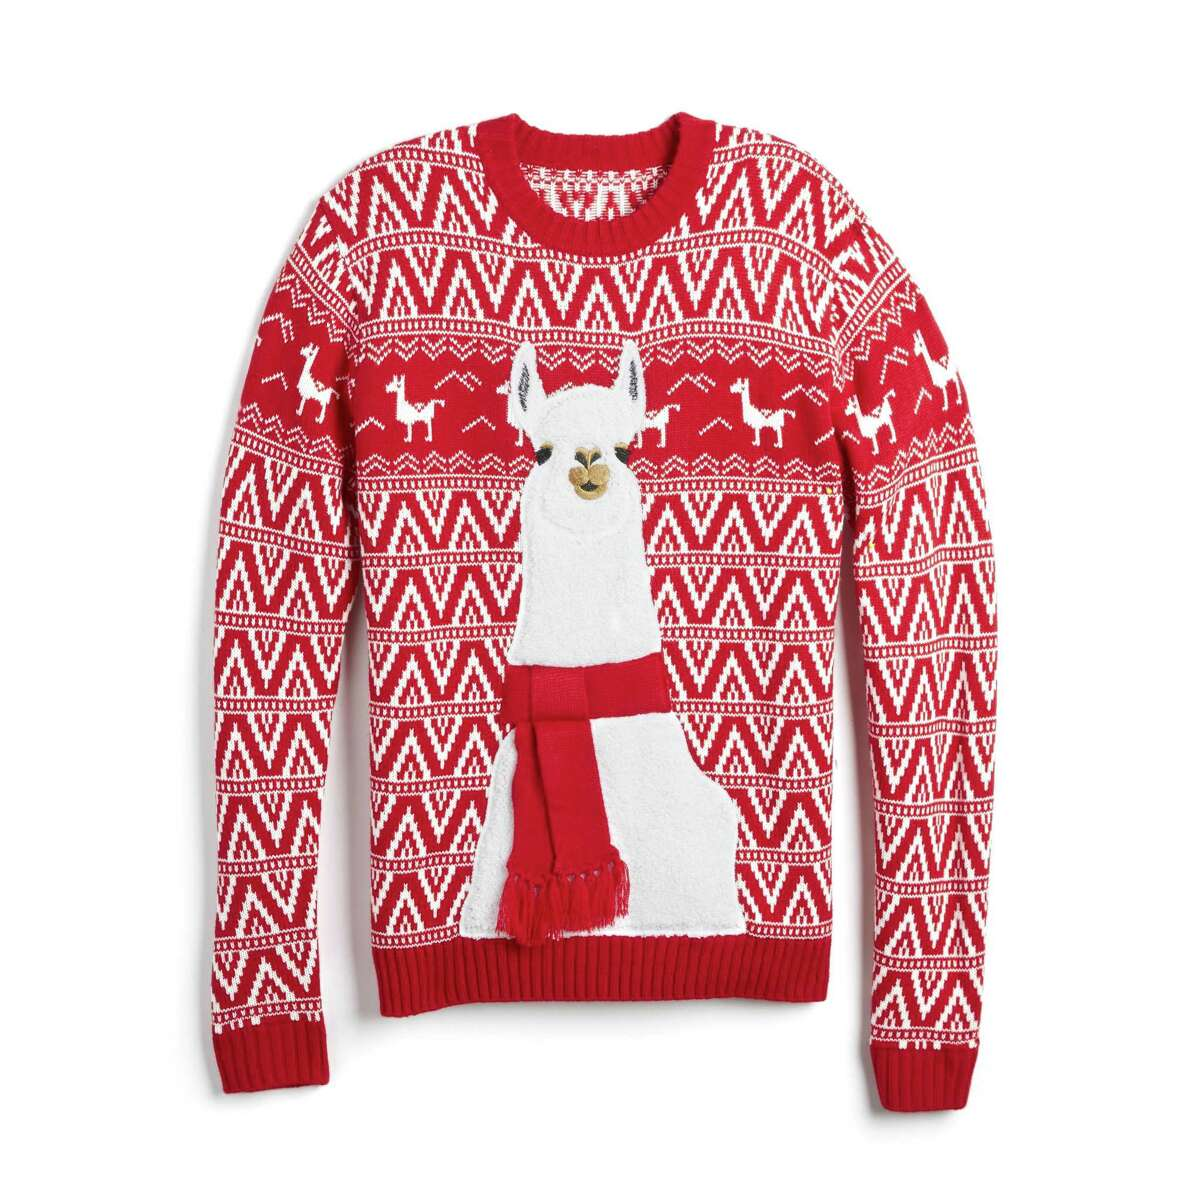 Not all are Christmas sweaters are ugly as much as they appear ironic or quirky, such as these from Kohl's.